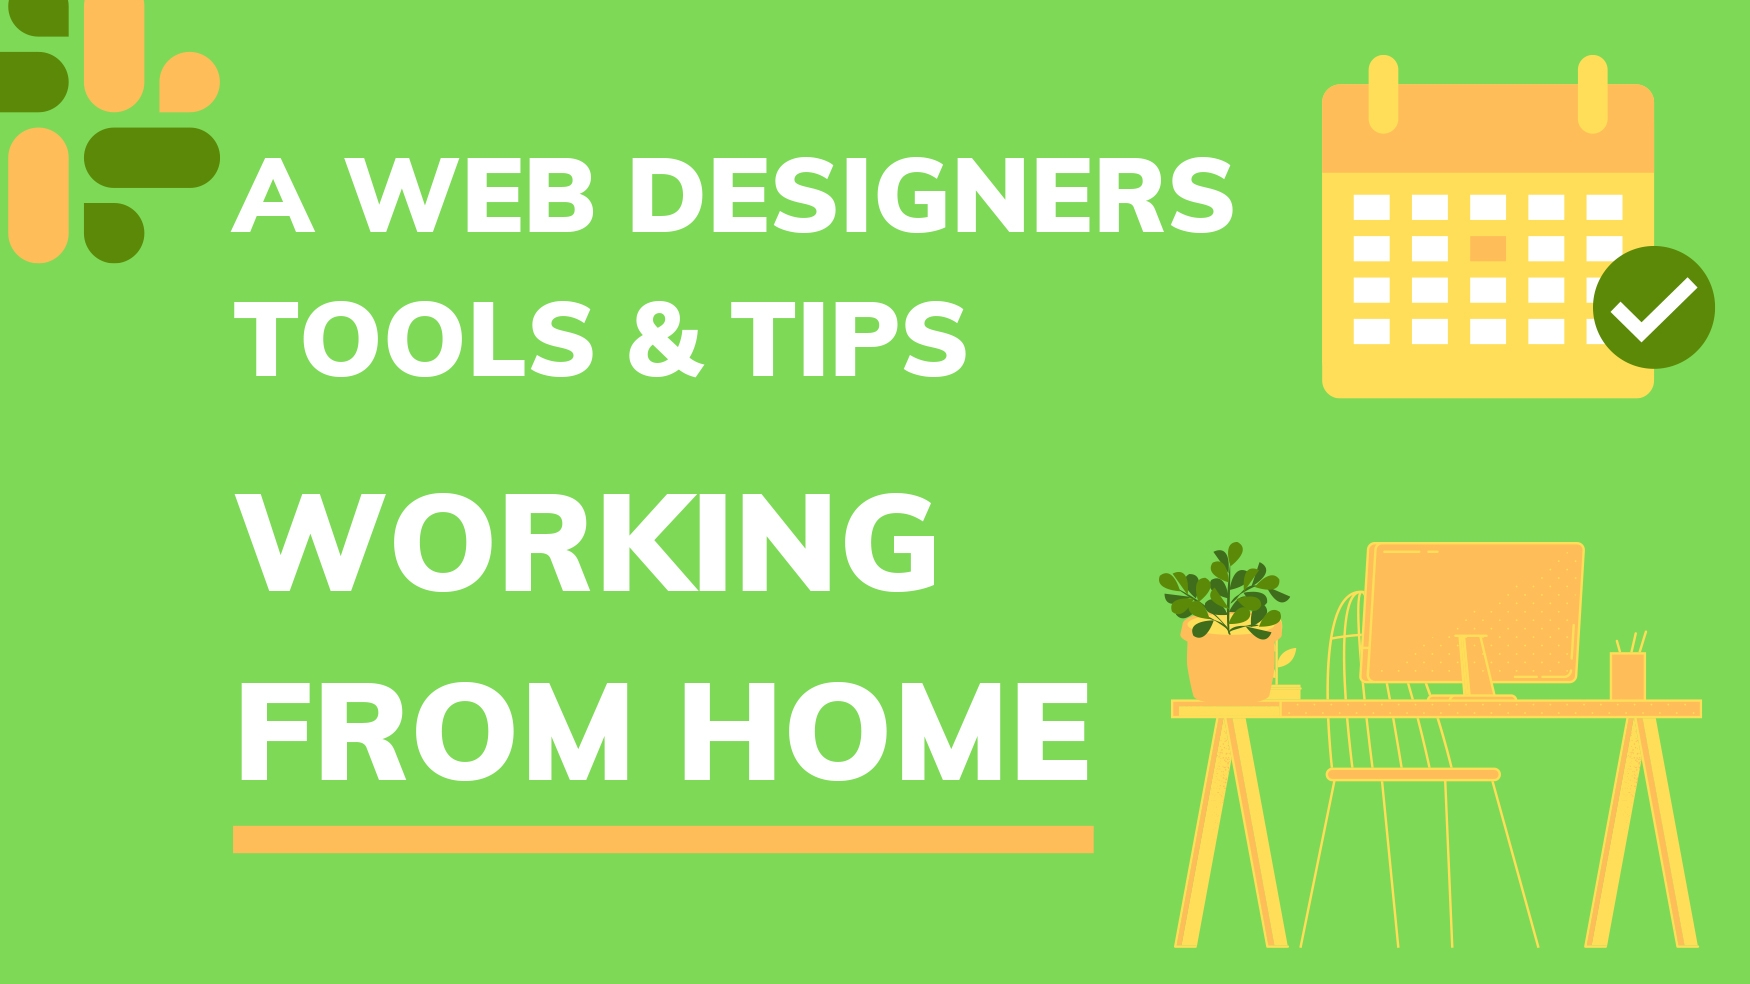 a web designers tools and tips working from home